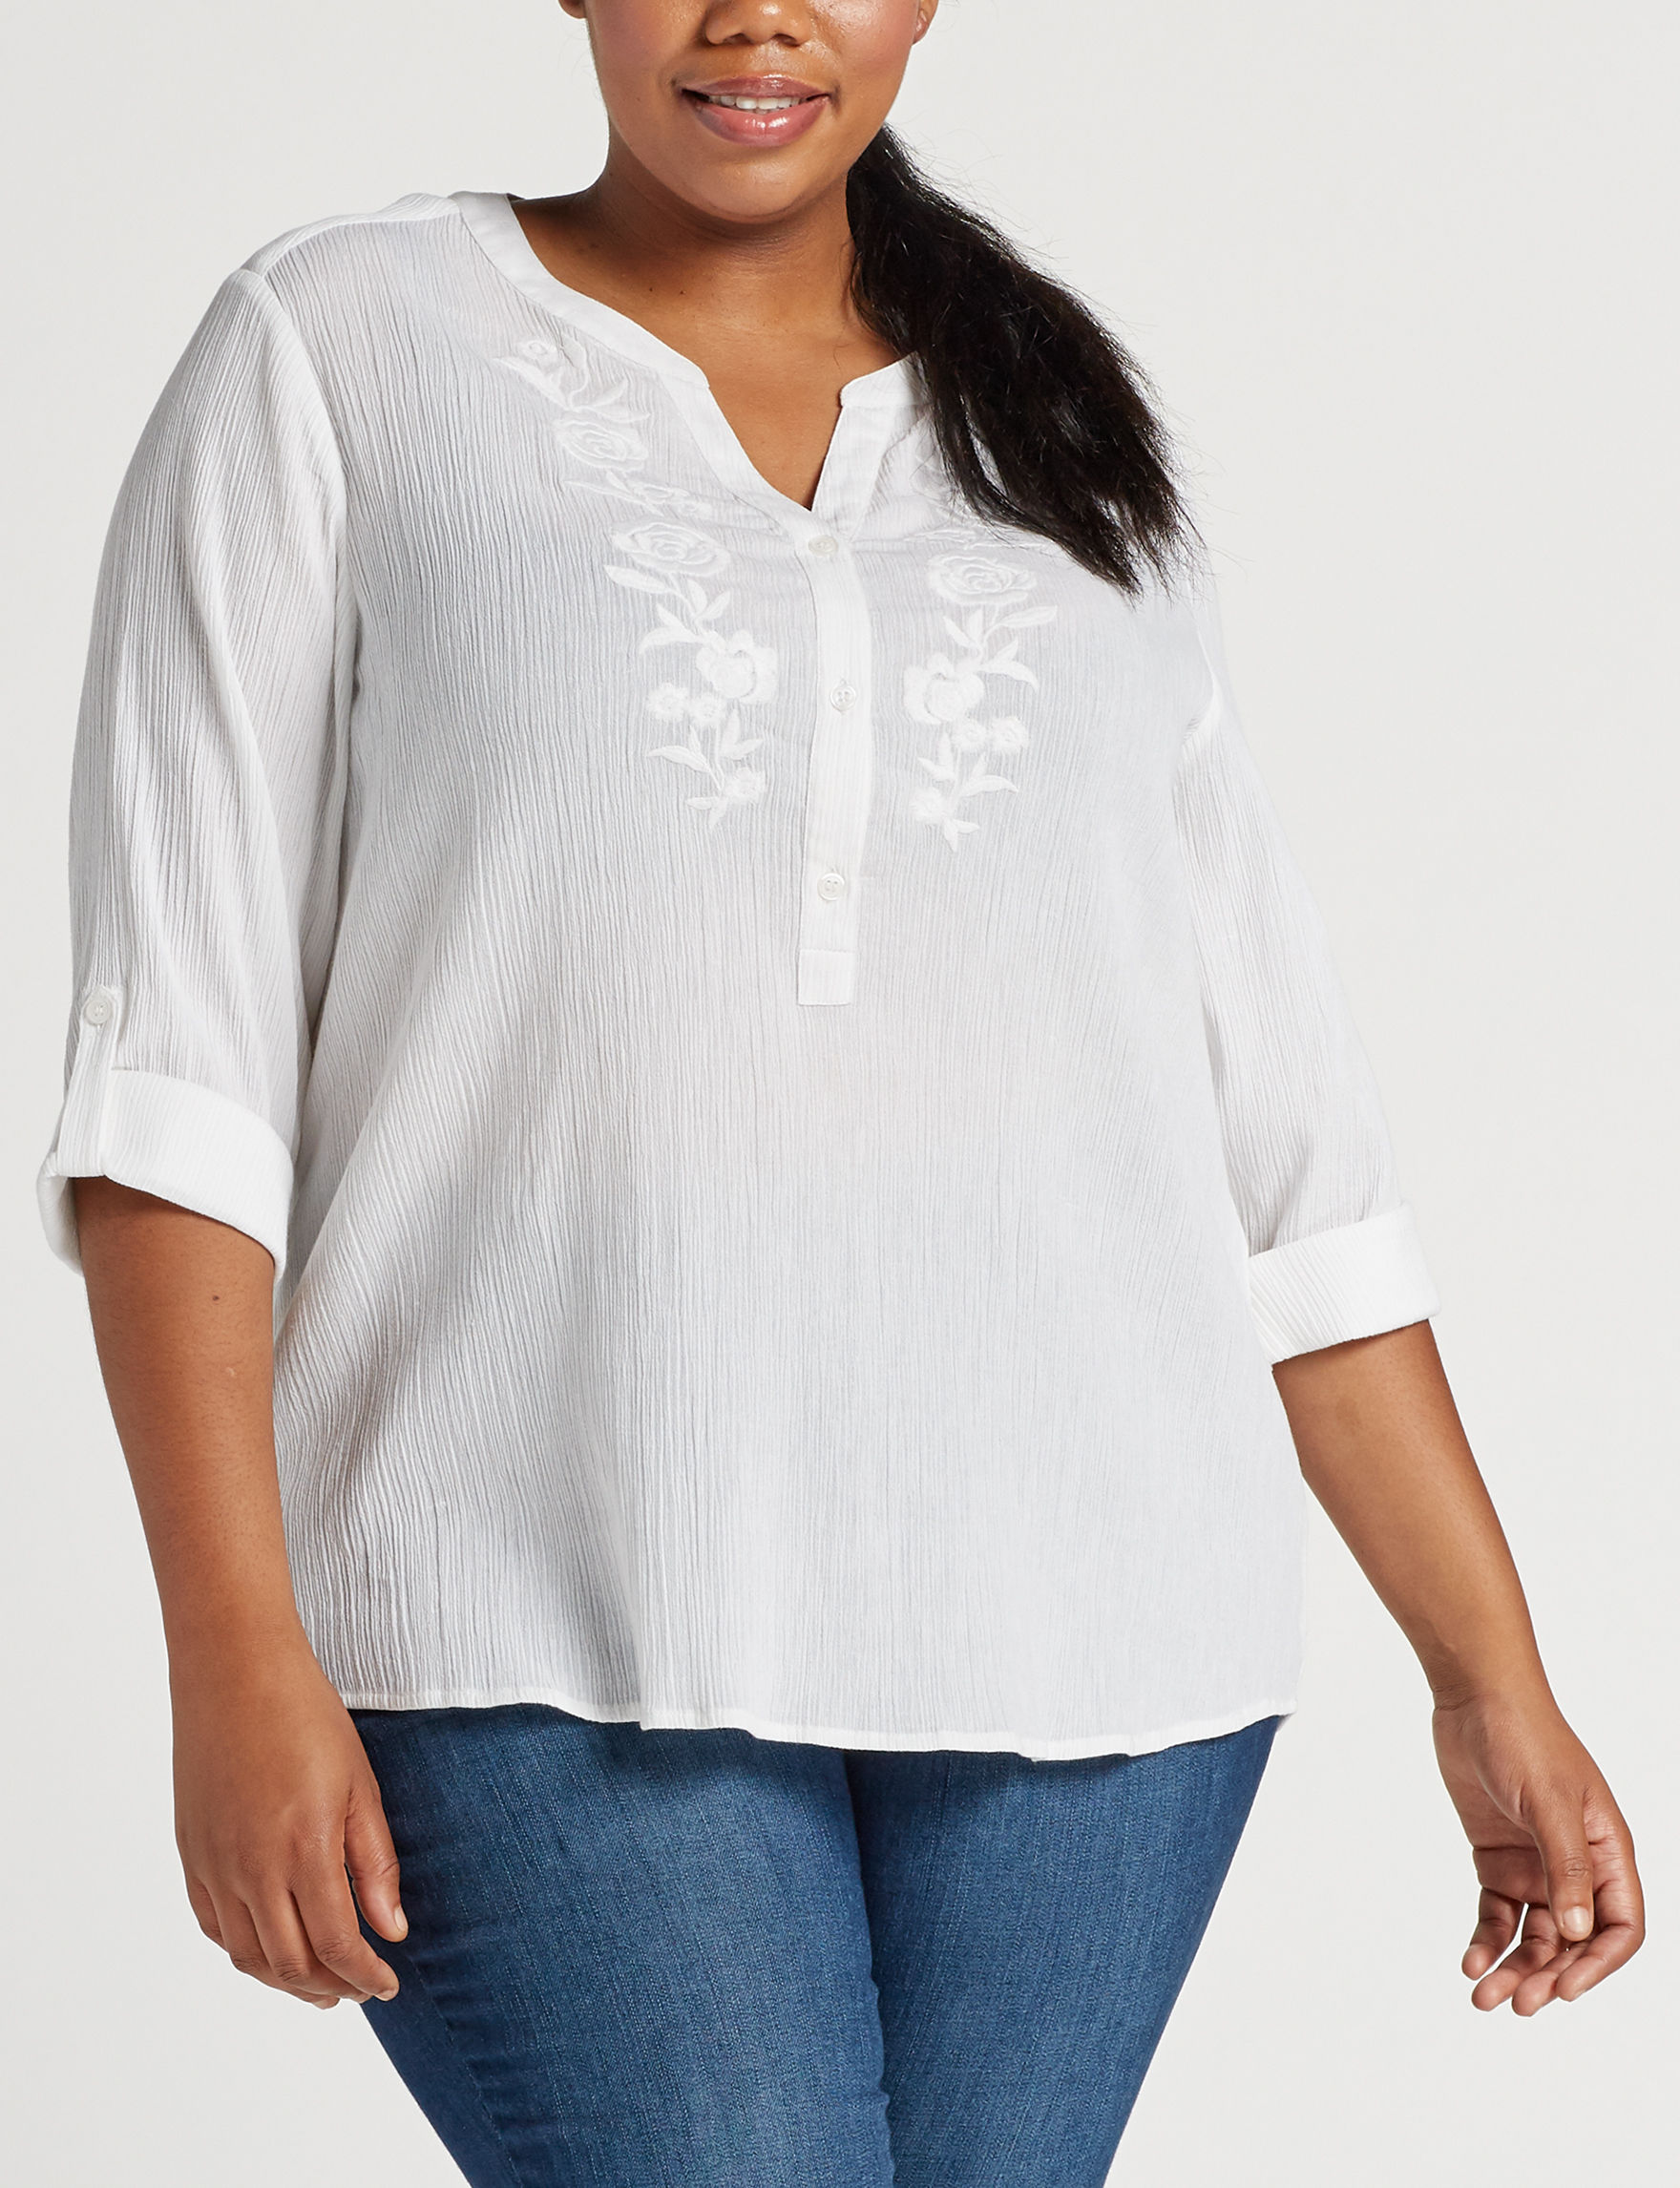 Cathy Daniels White Shirts & Blouses